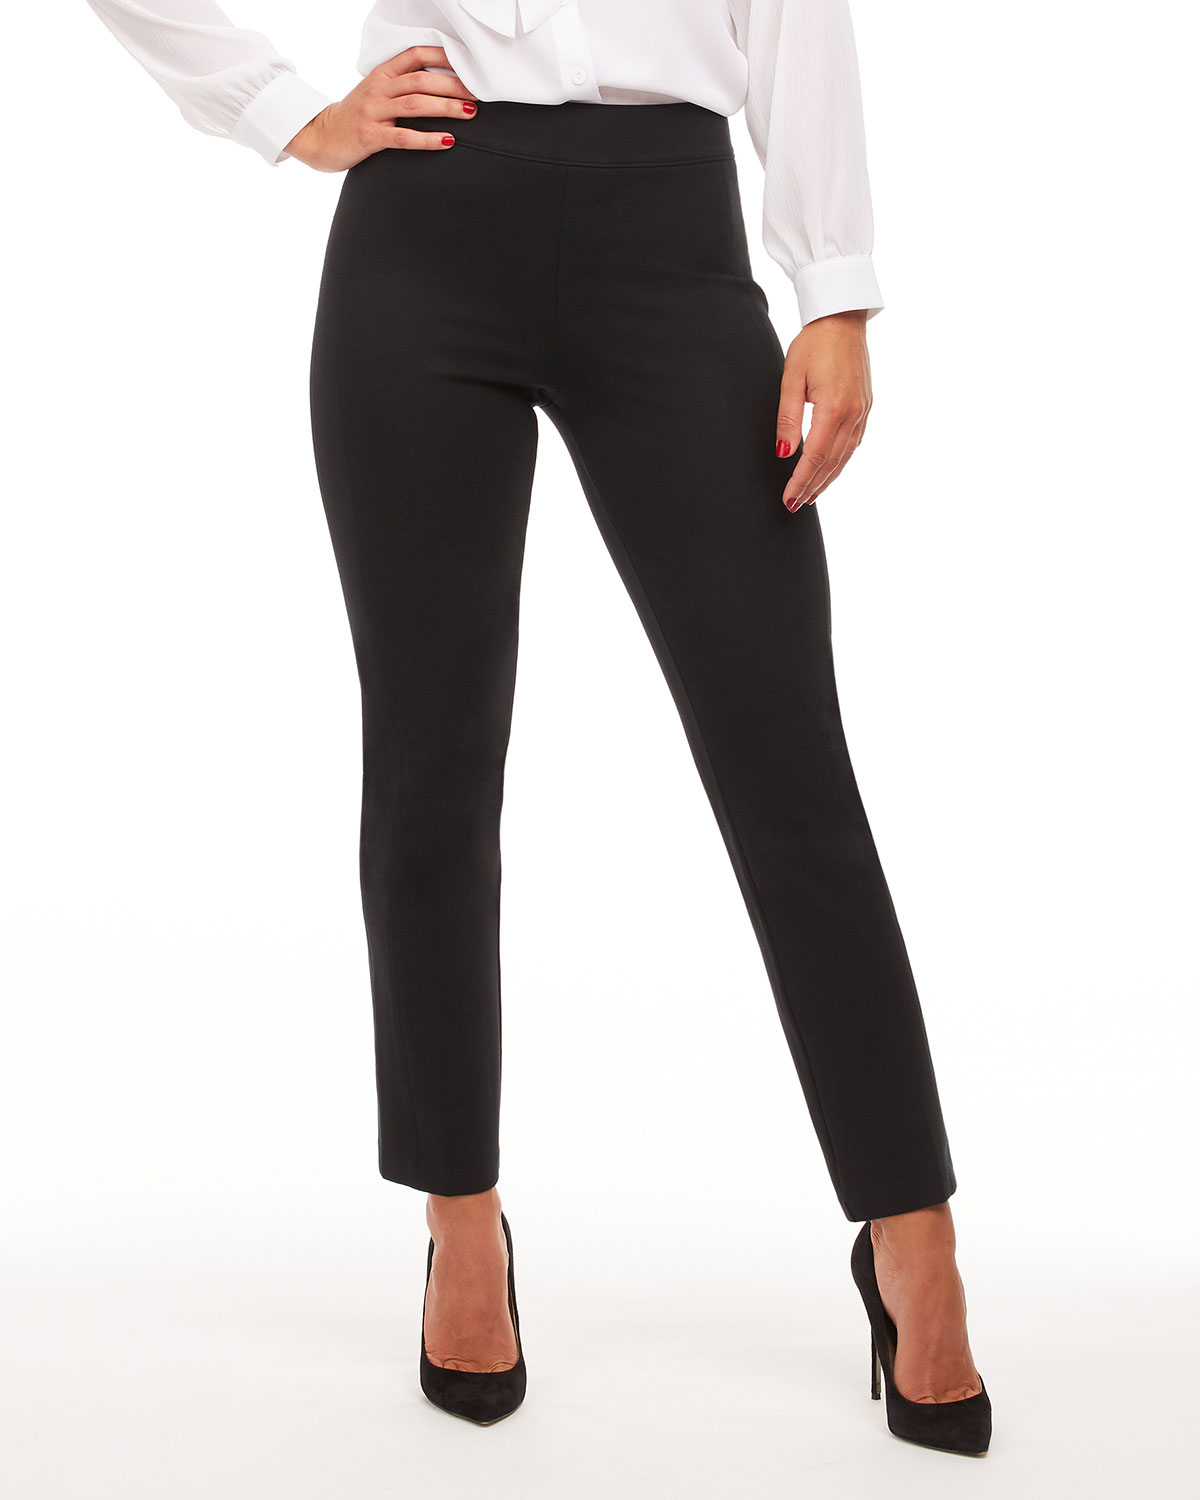 The Perfect Black Slim Straight Pants